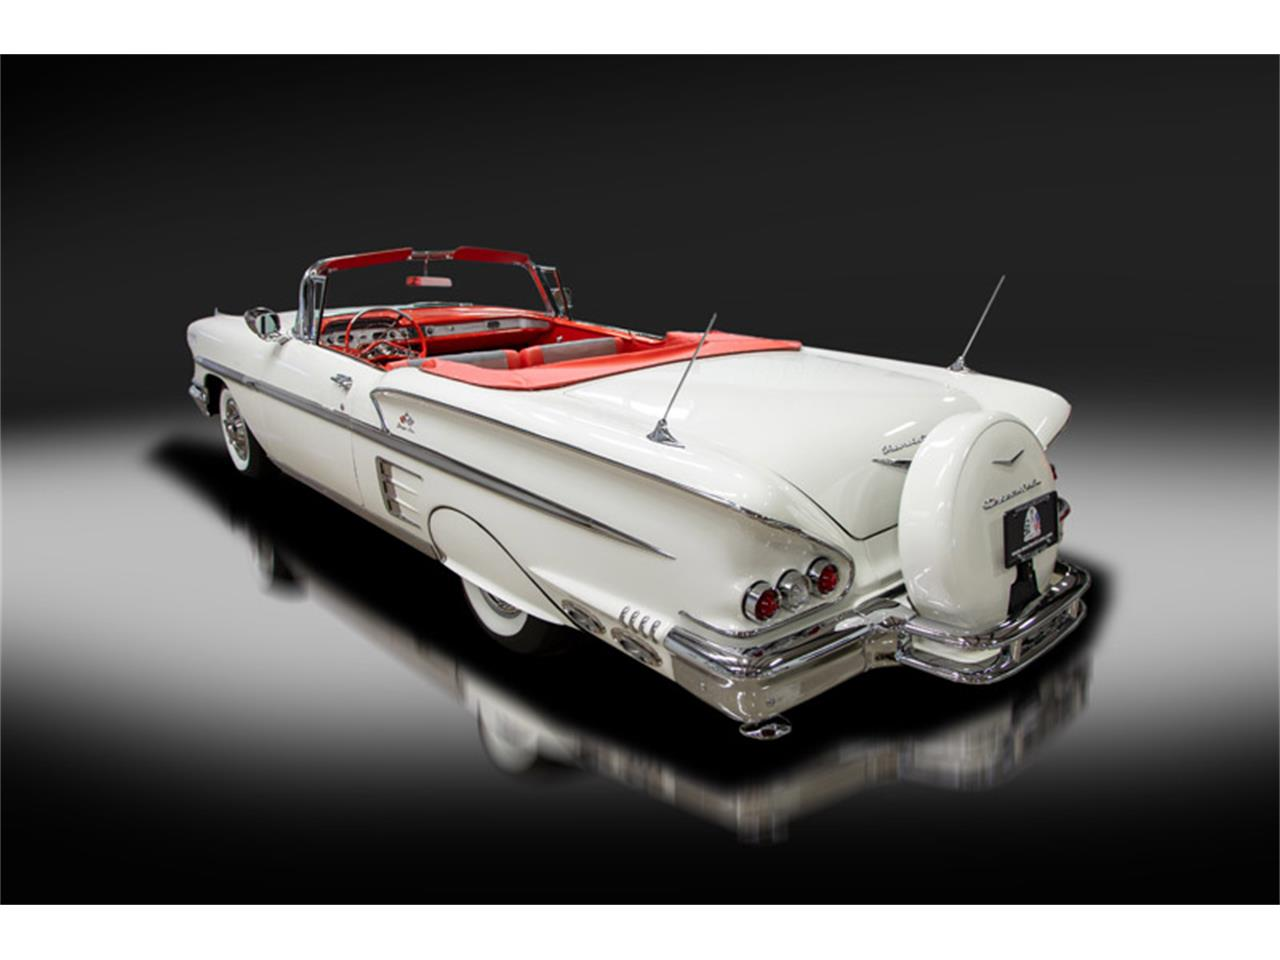 Large Picture of Classic 1958 Chevrolet Impala located in Massachusetts Auction Vehicle Offered by MS Classic Cars - R275